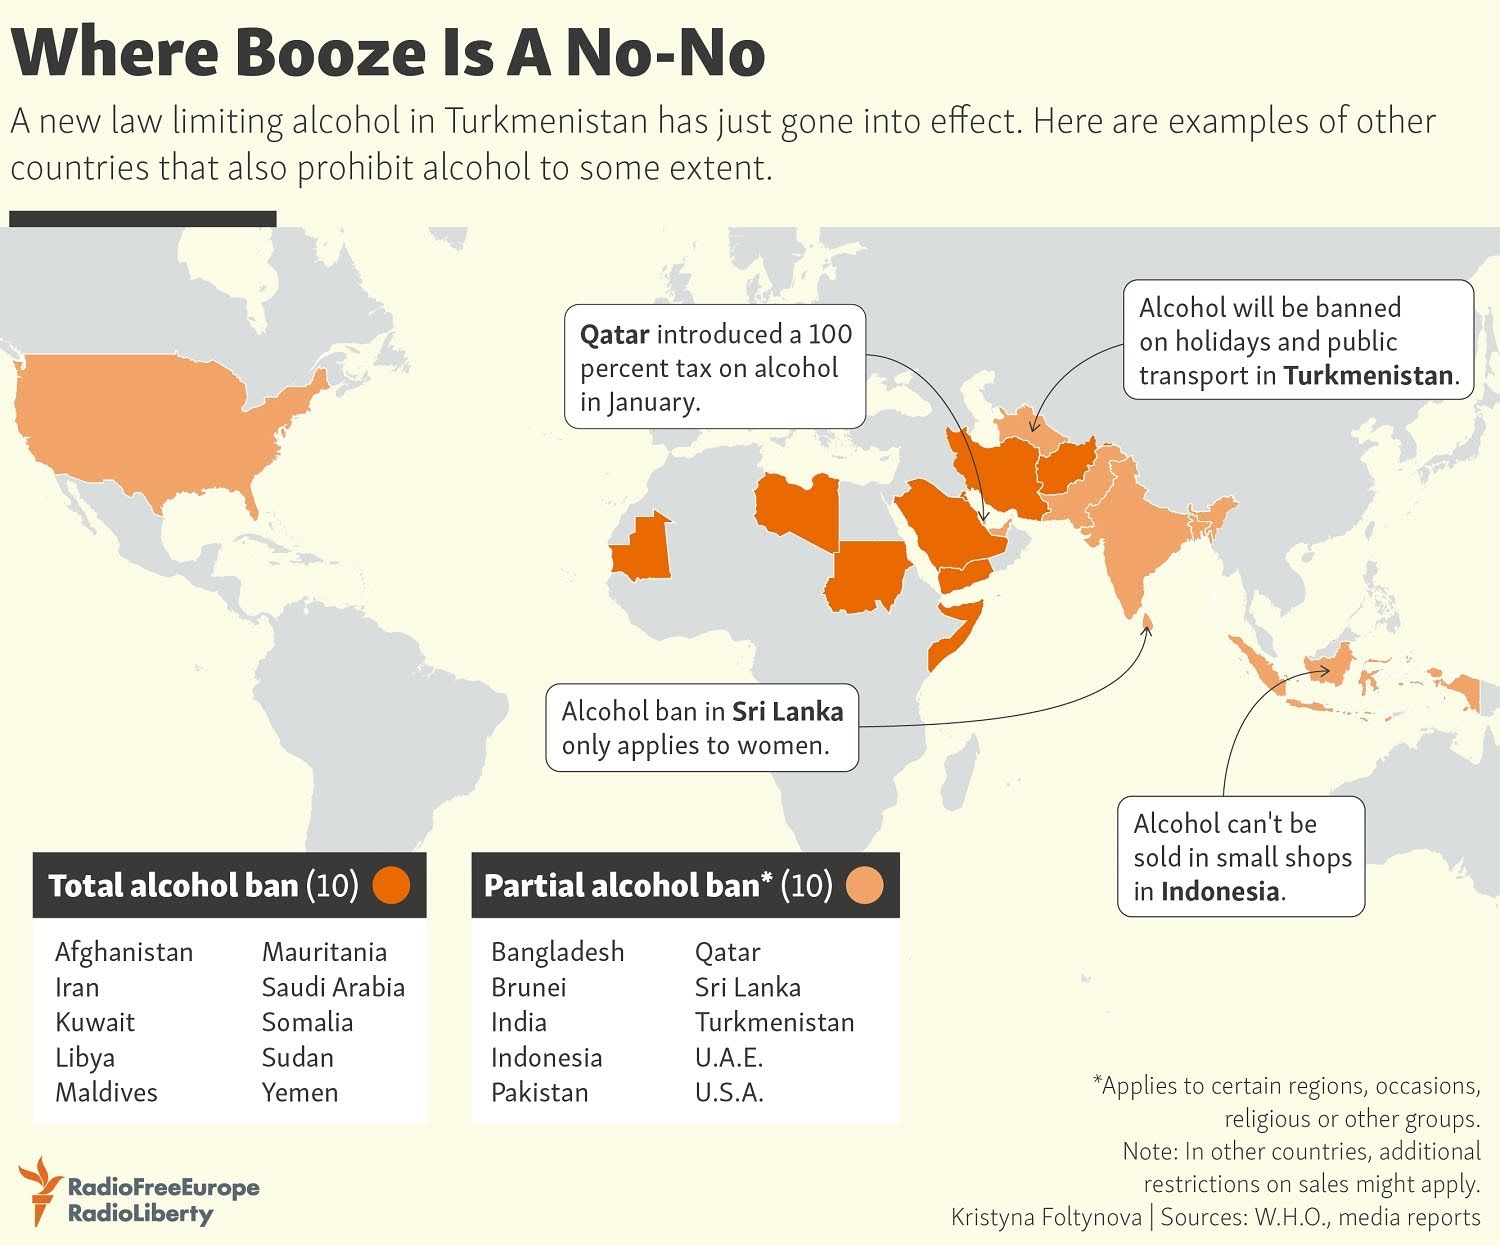 Where Booze Is A No-No